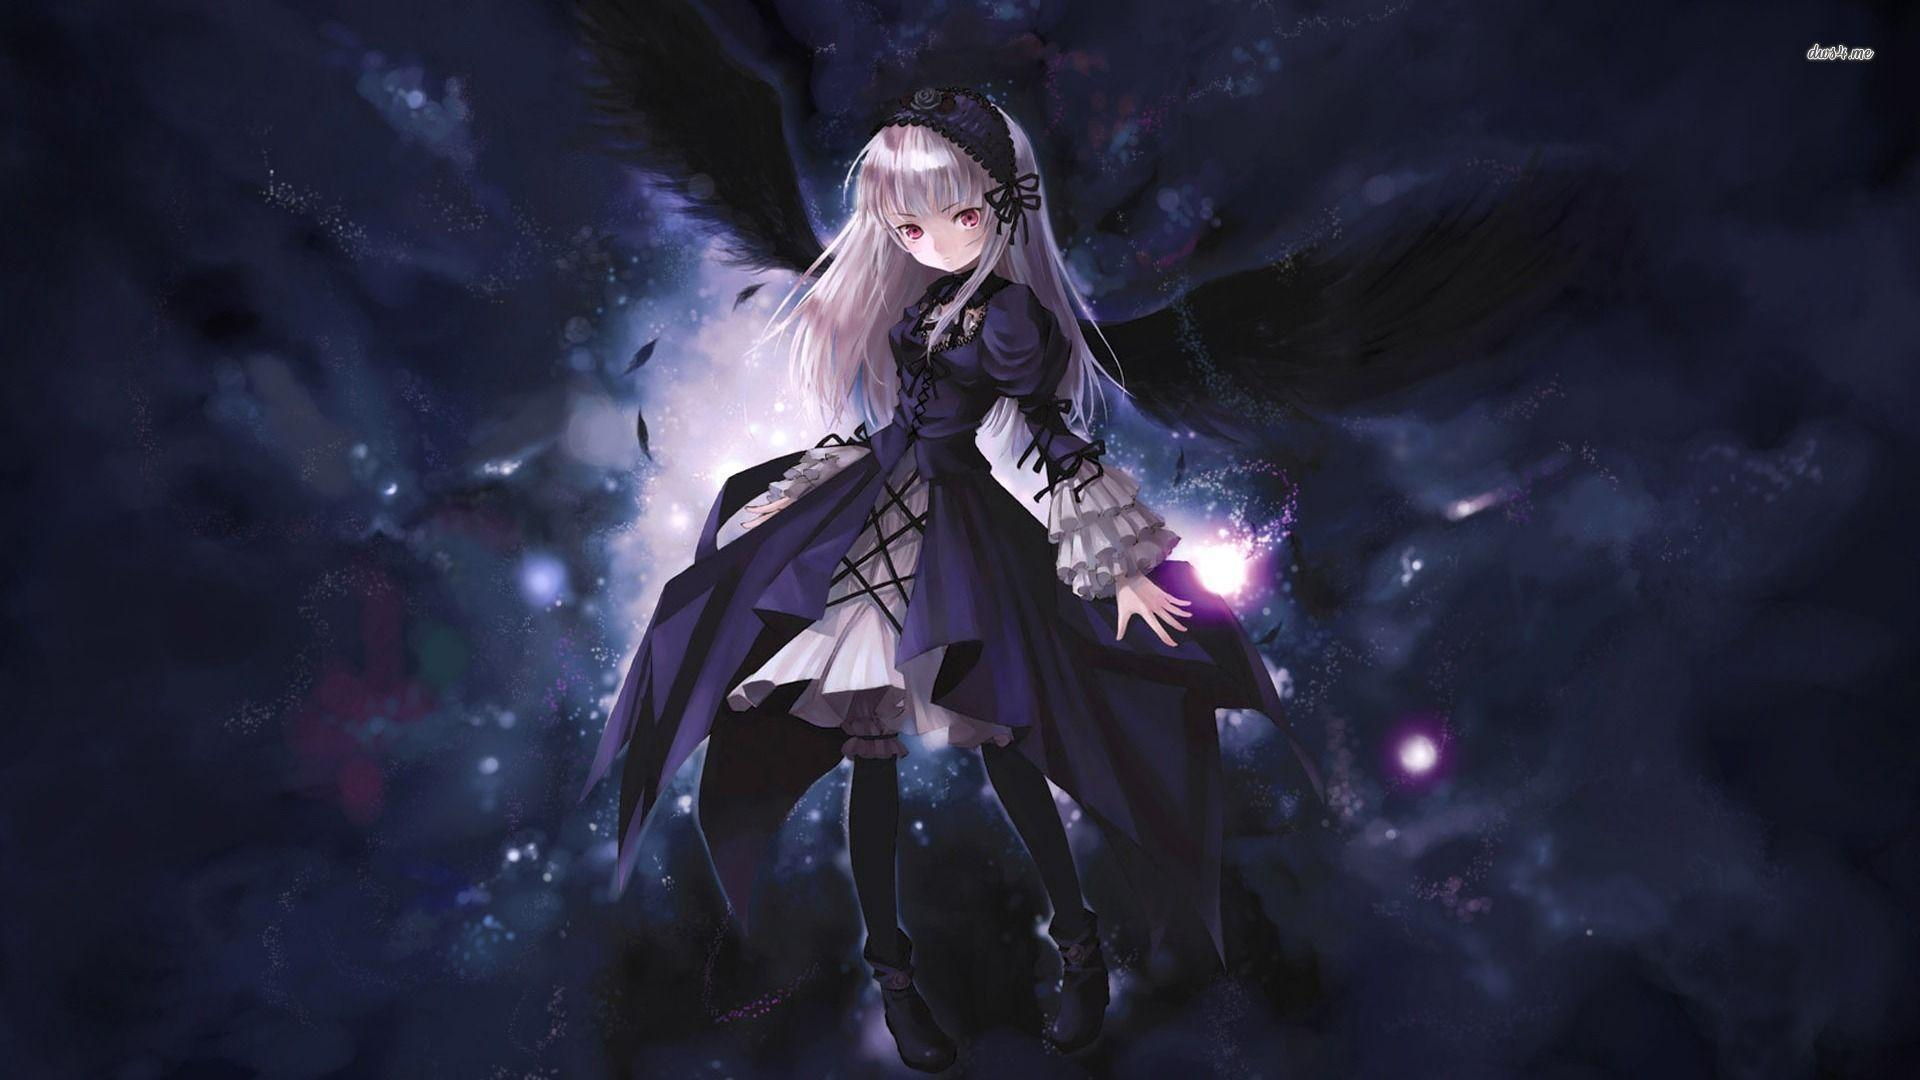 Anime Gothic Girl Wallpaper Gothic Anime Wallpapers Wallpaper Cave